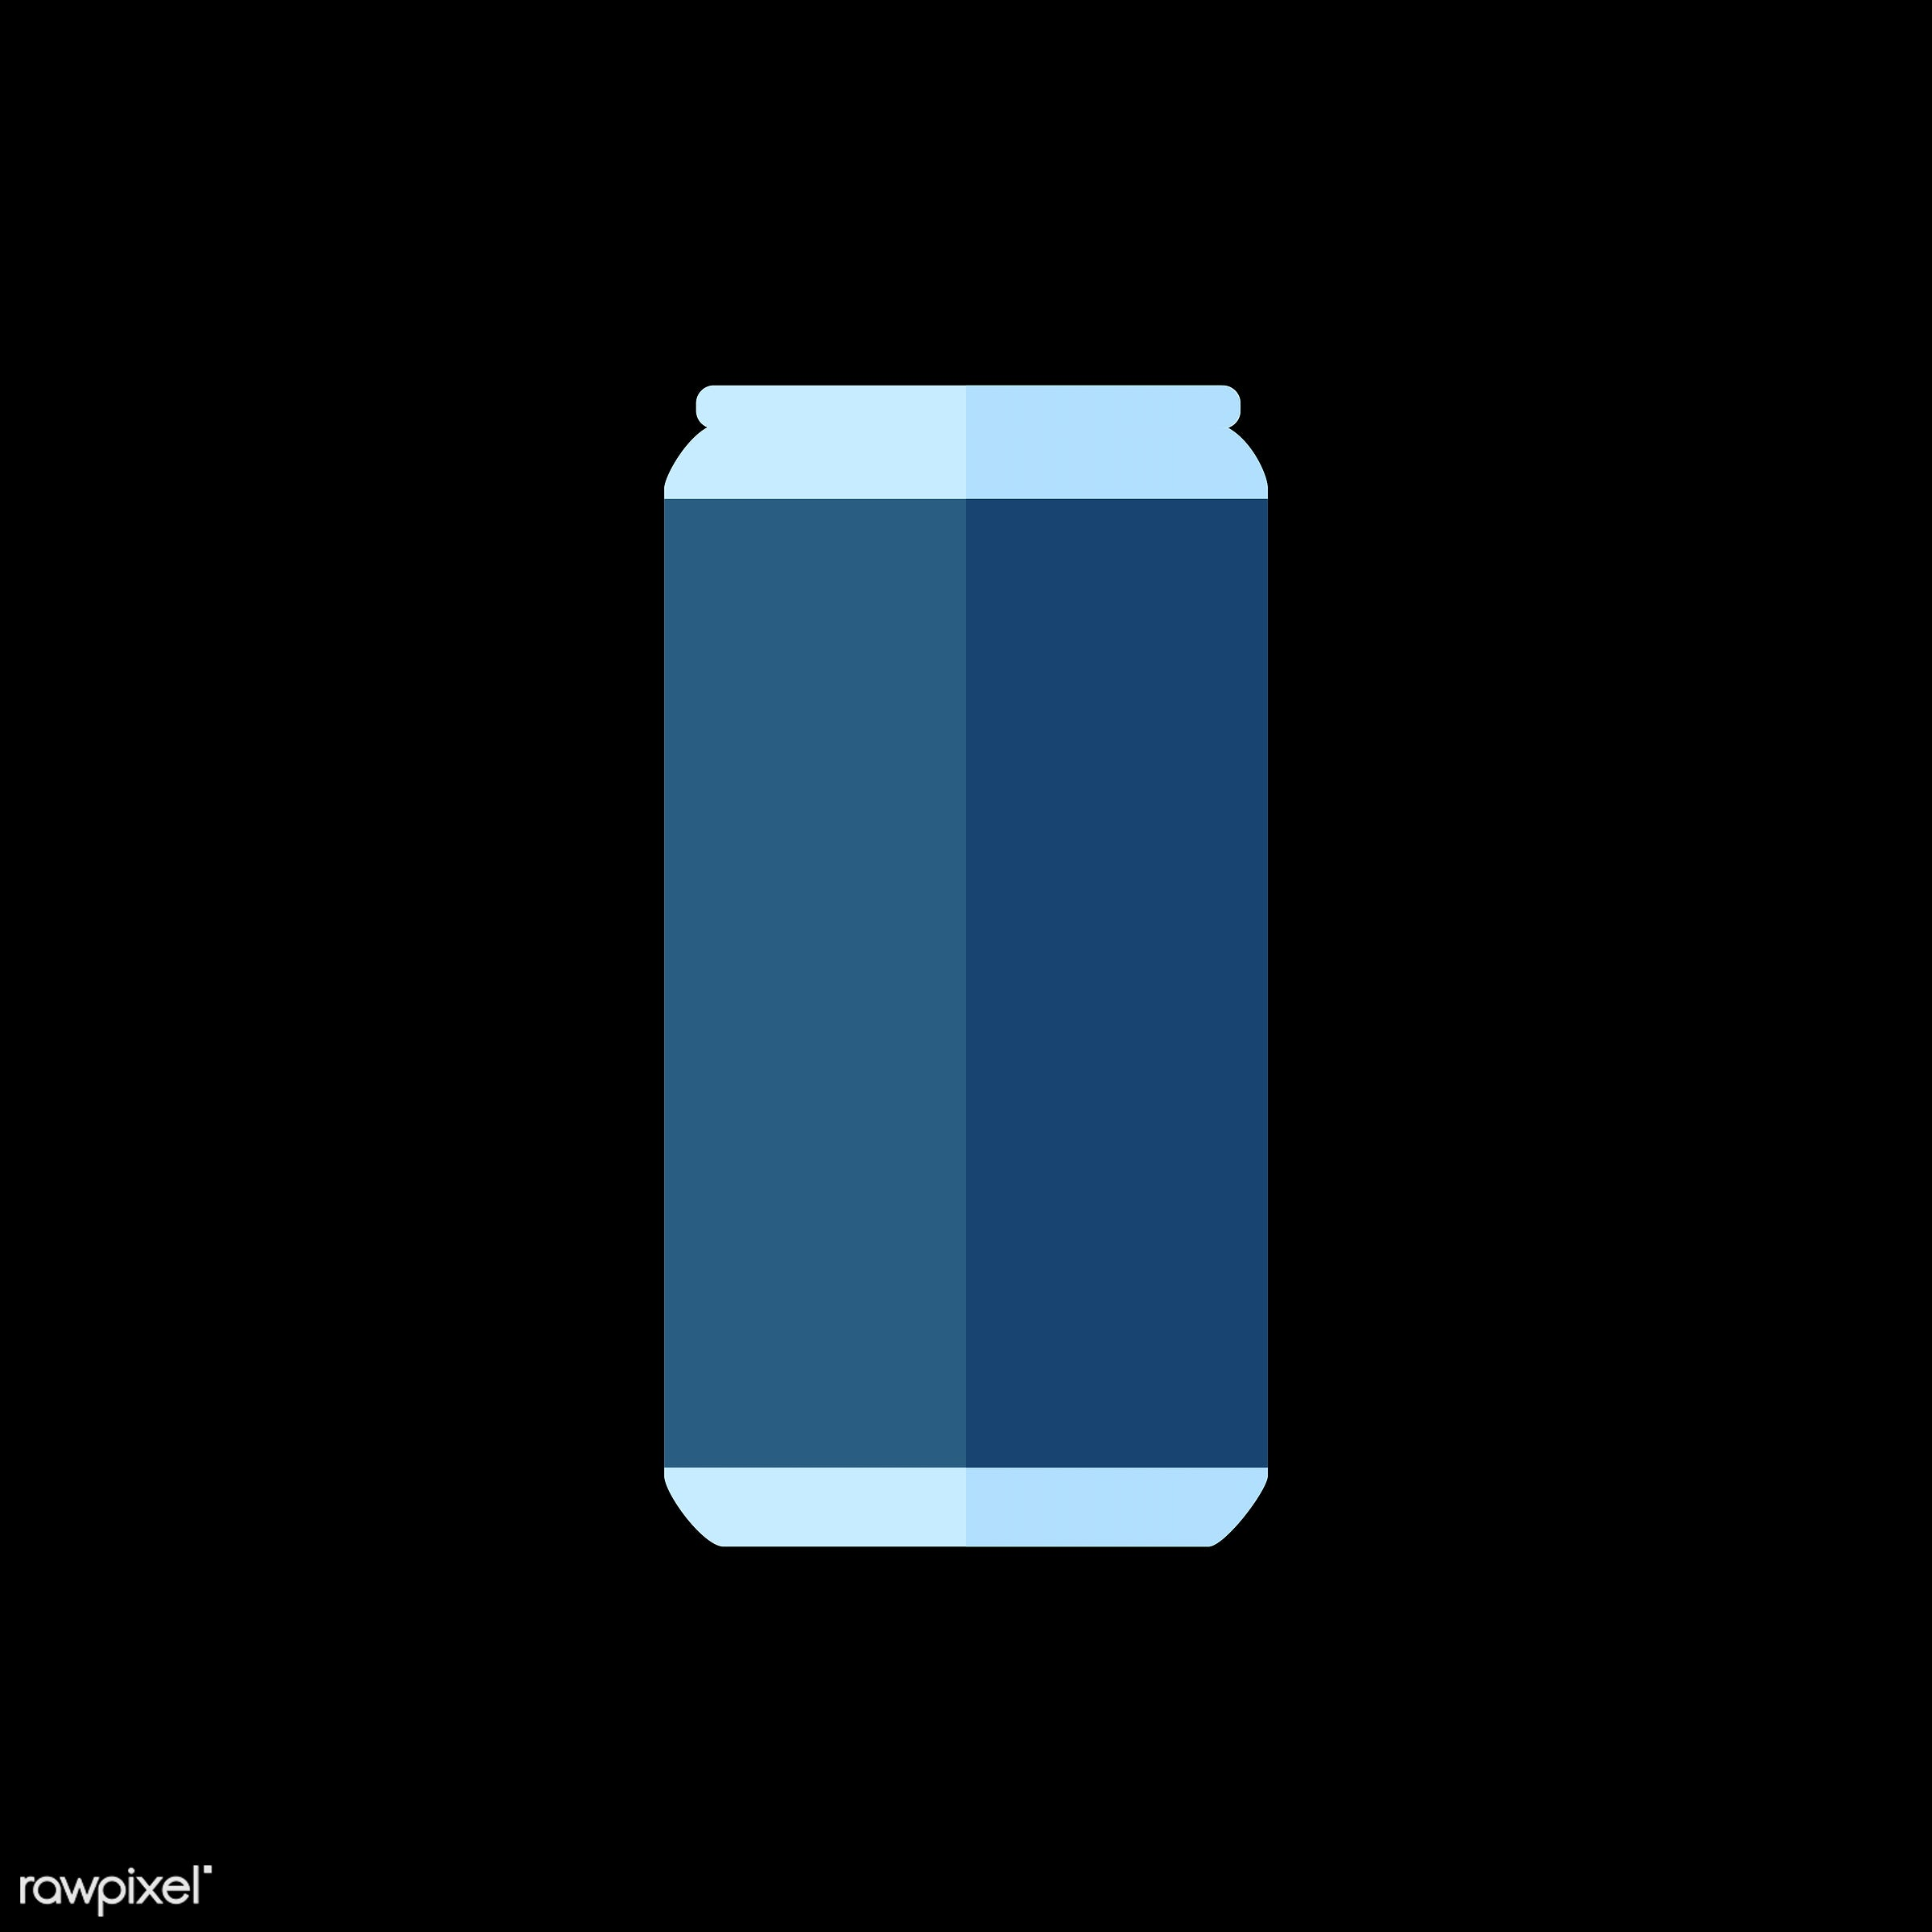 vector, graphic, illustration, icon, symbol, colorful, cute, drink, beverage, water, can, beer can, soda can, blue